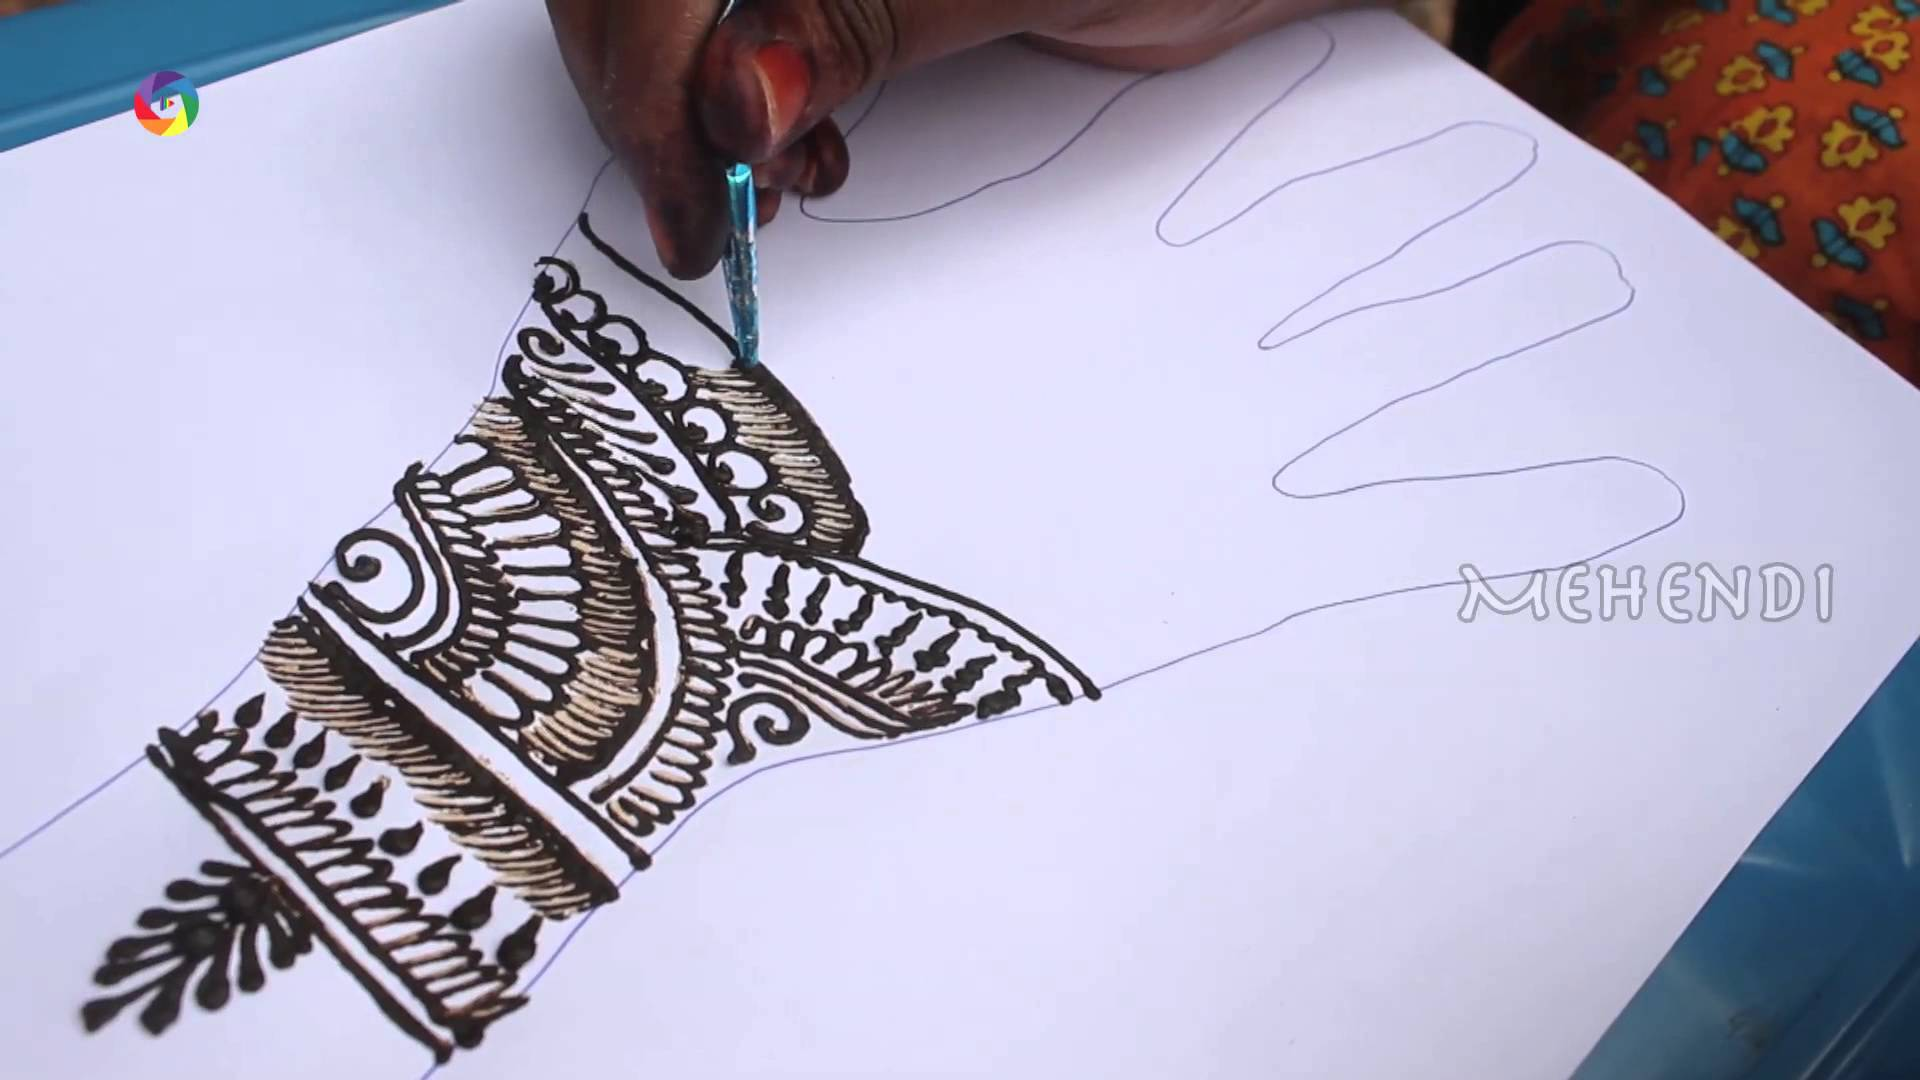 Cool Art Designs To Draw : Cool drawing designs on paper at getdrawings.com free for personal